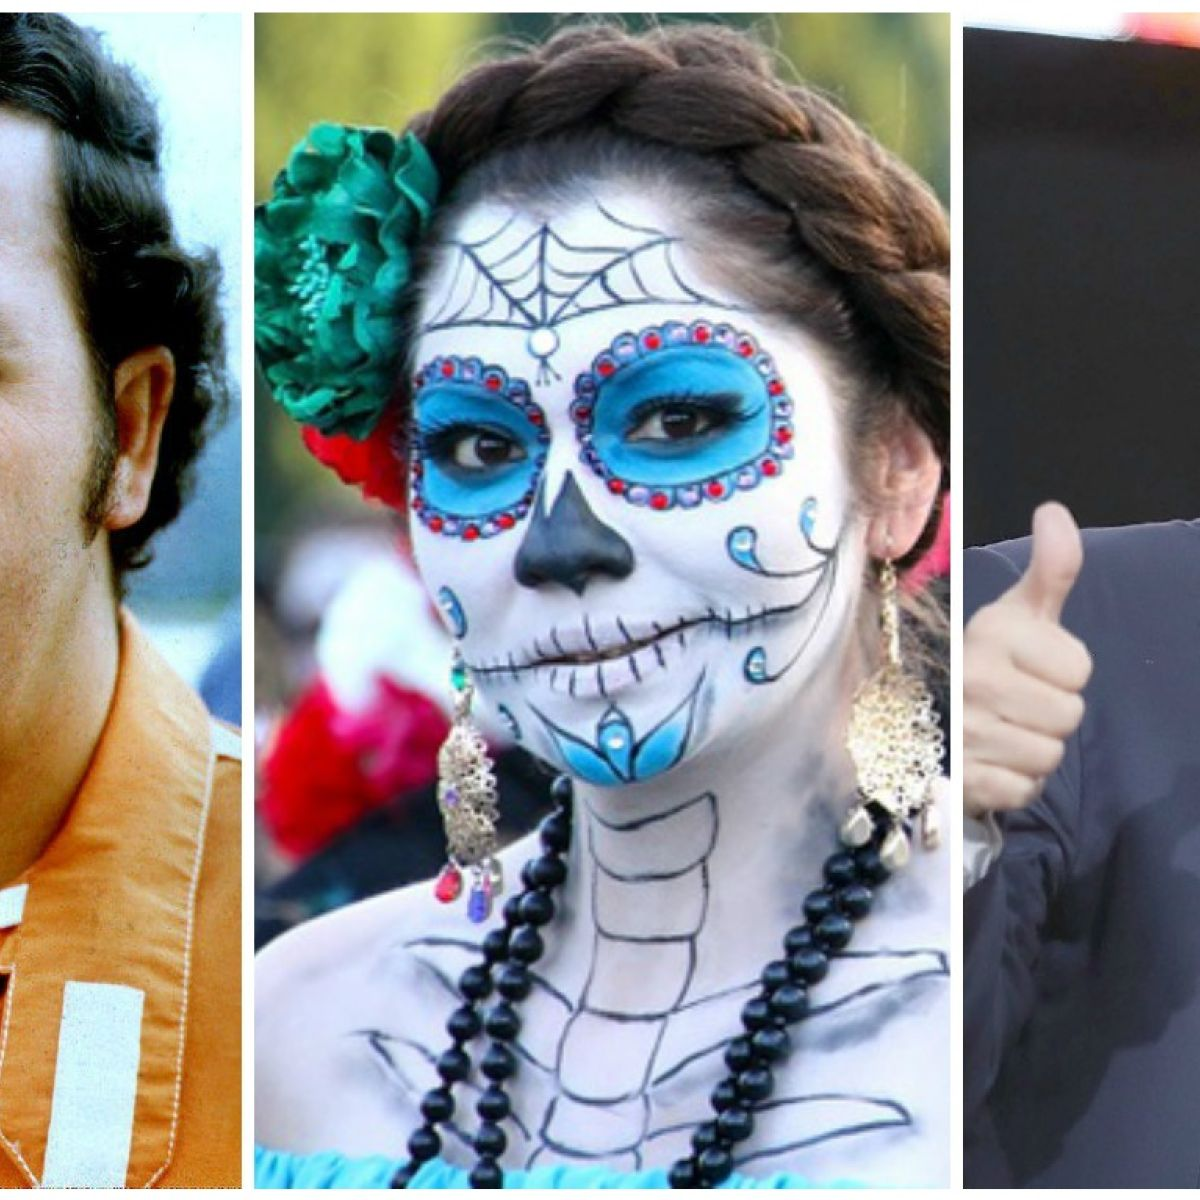 halloween costume ideas: five get-ups to amuse and terrify